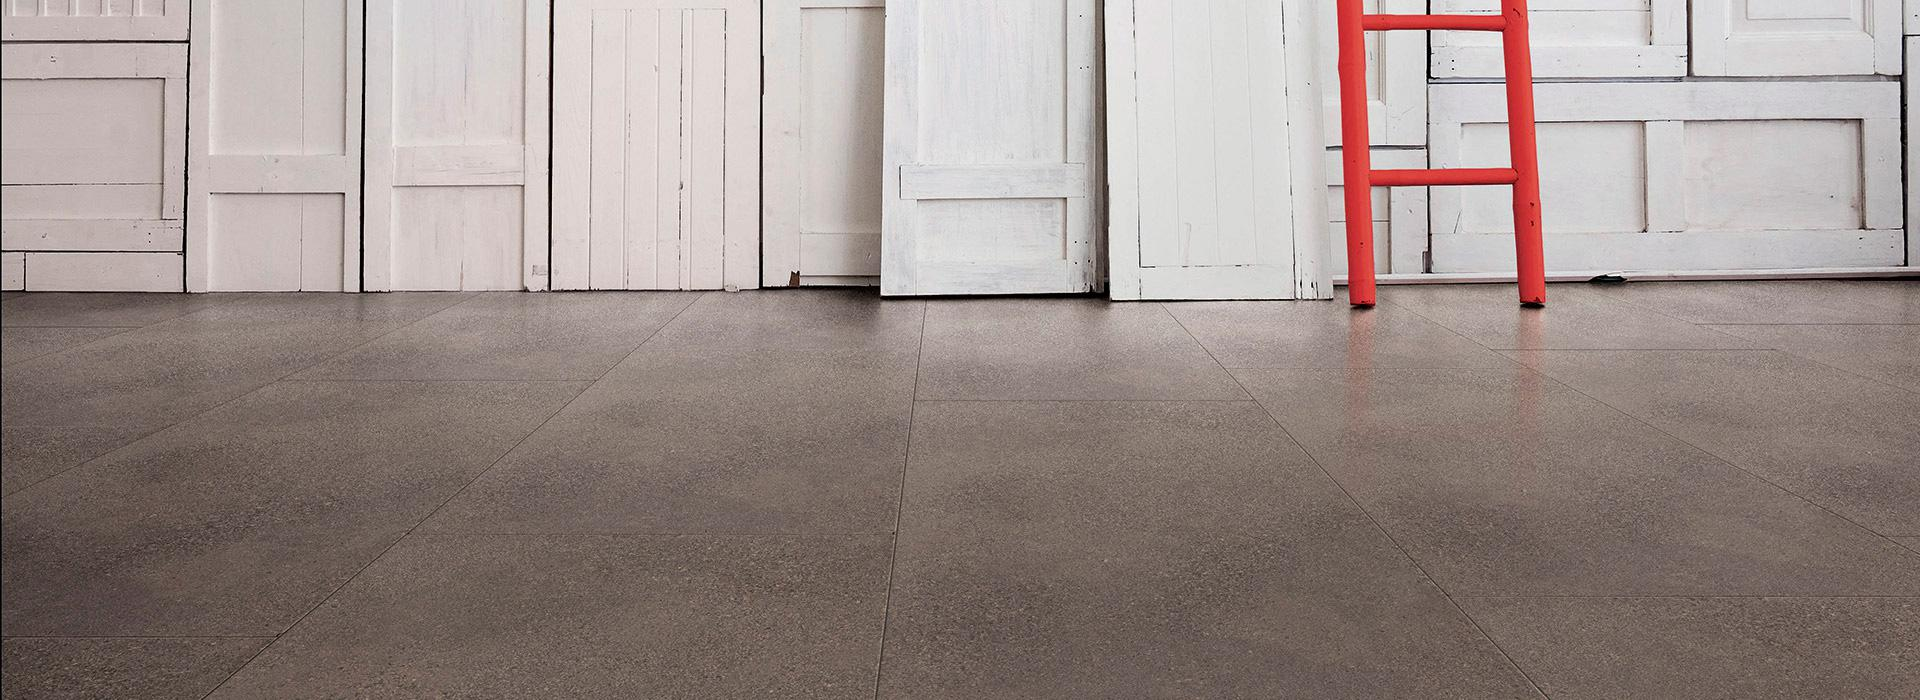 Trax Porcelain Tiles Like Natural Stone - Traxtile flooring